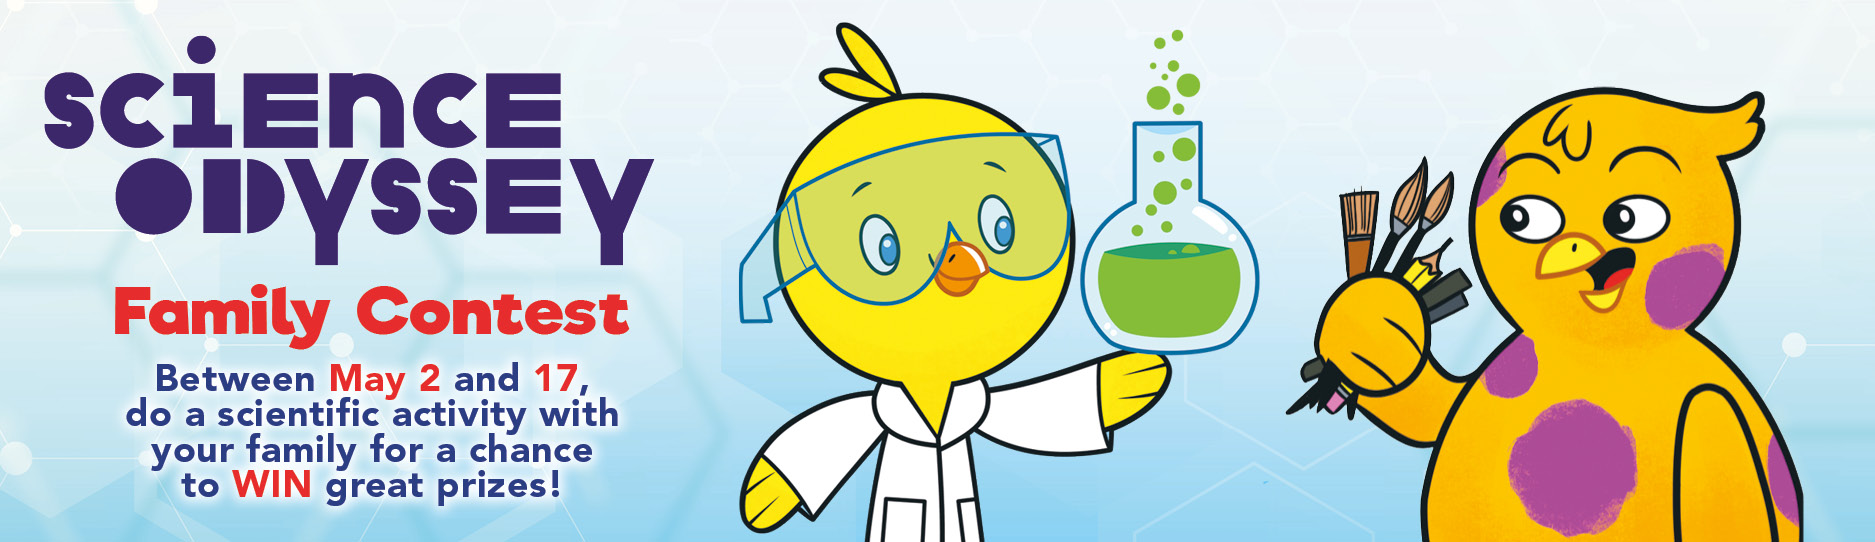 Chirp science odyssey contest: contest banner